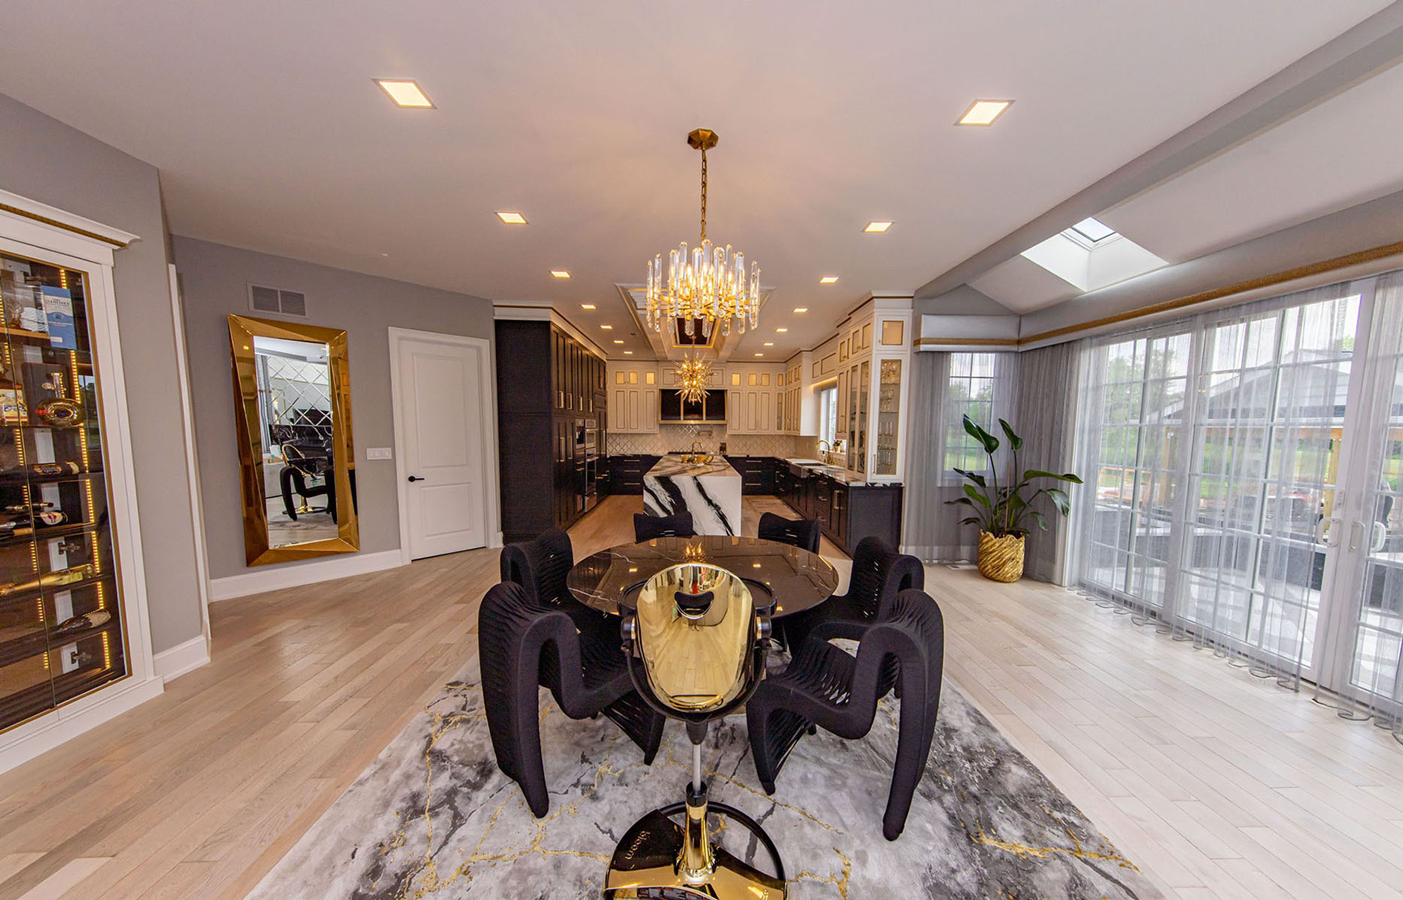 Affordable Full-Service Interior Design Services in the Bucks County Area